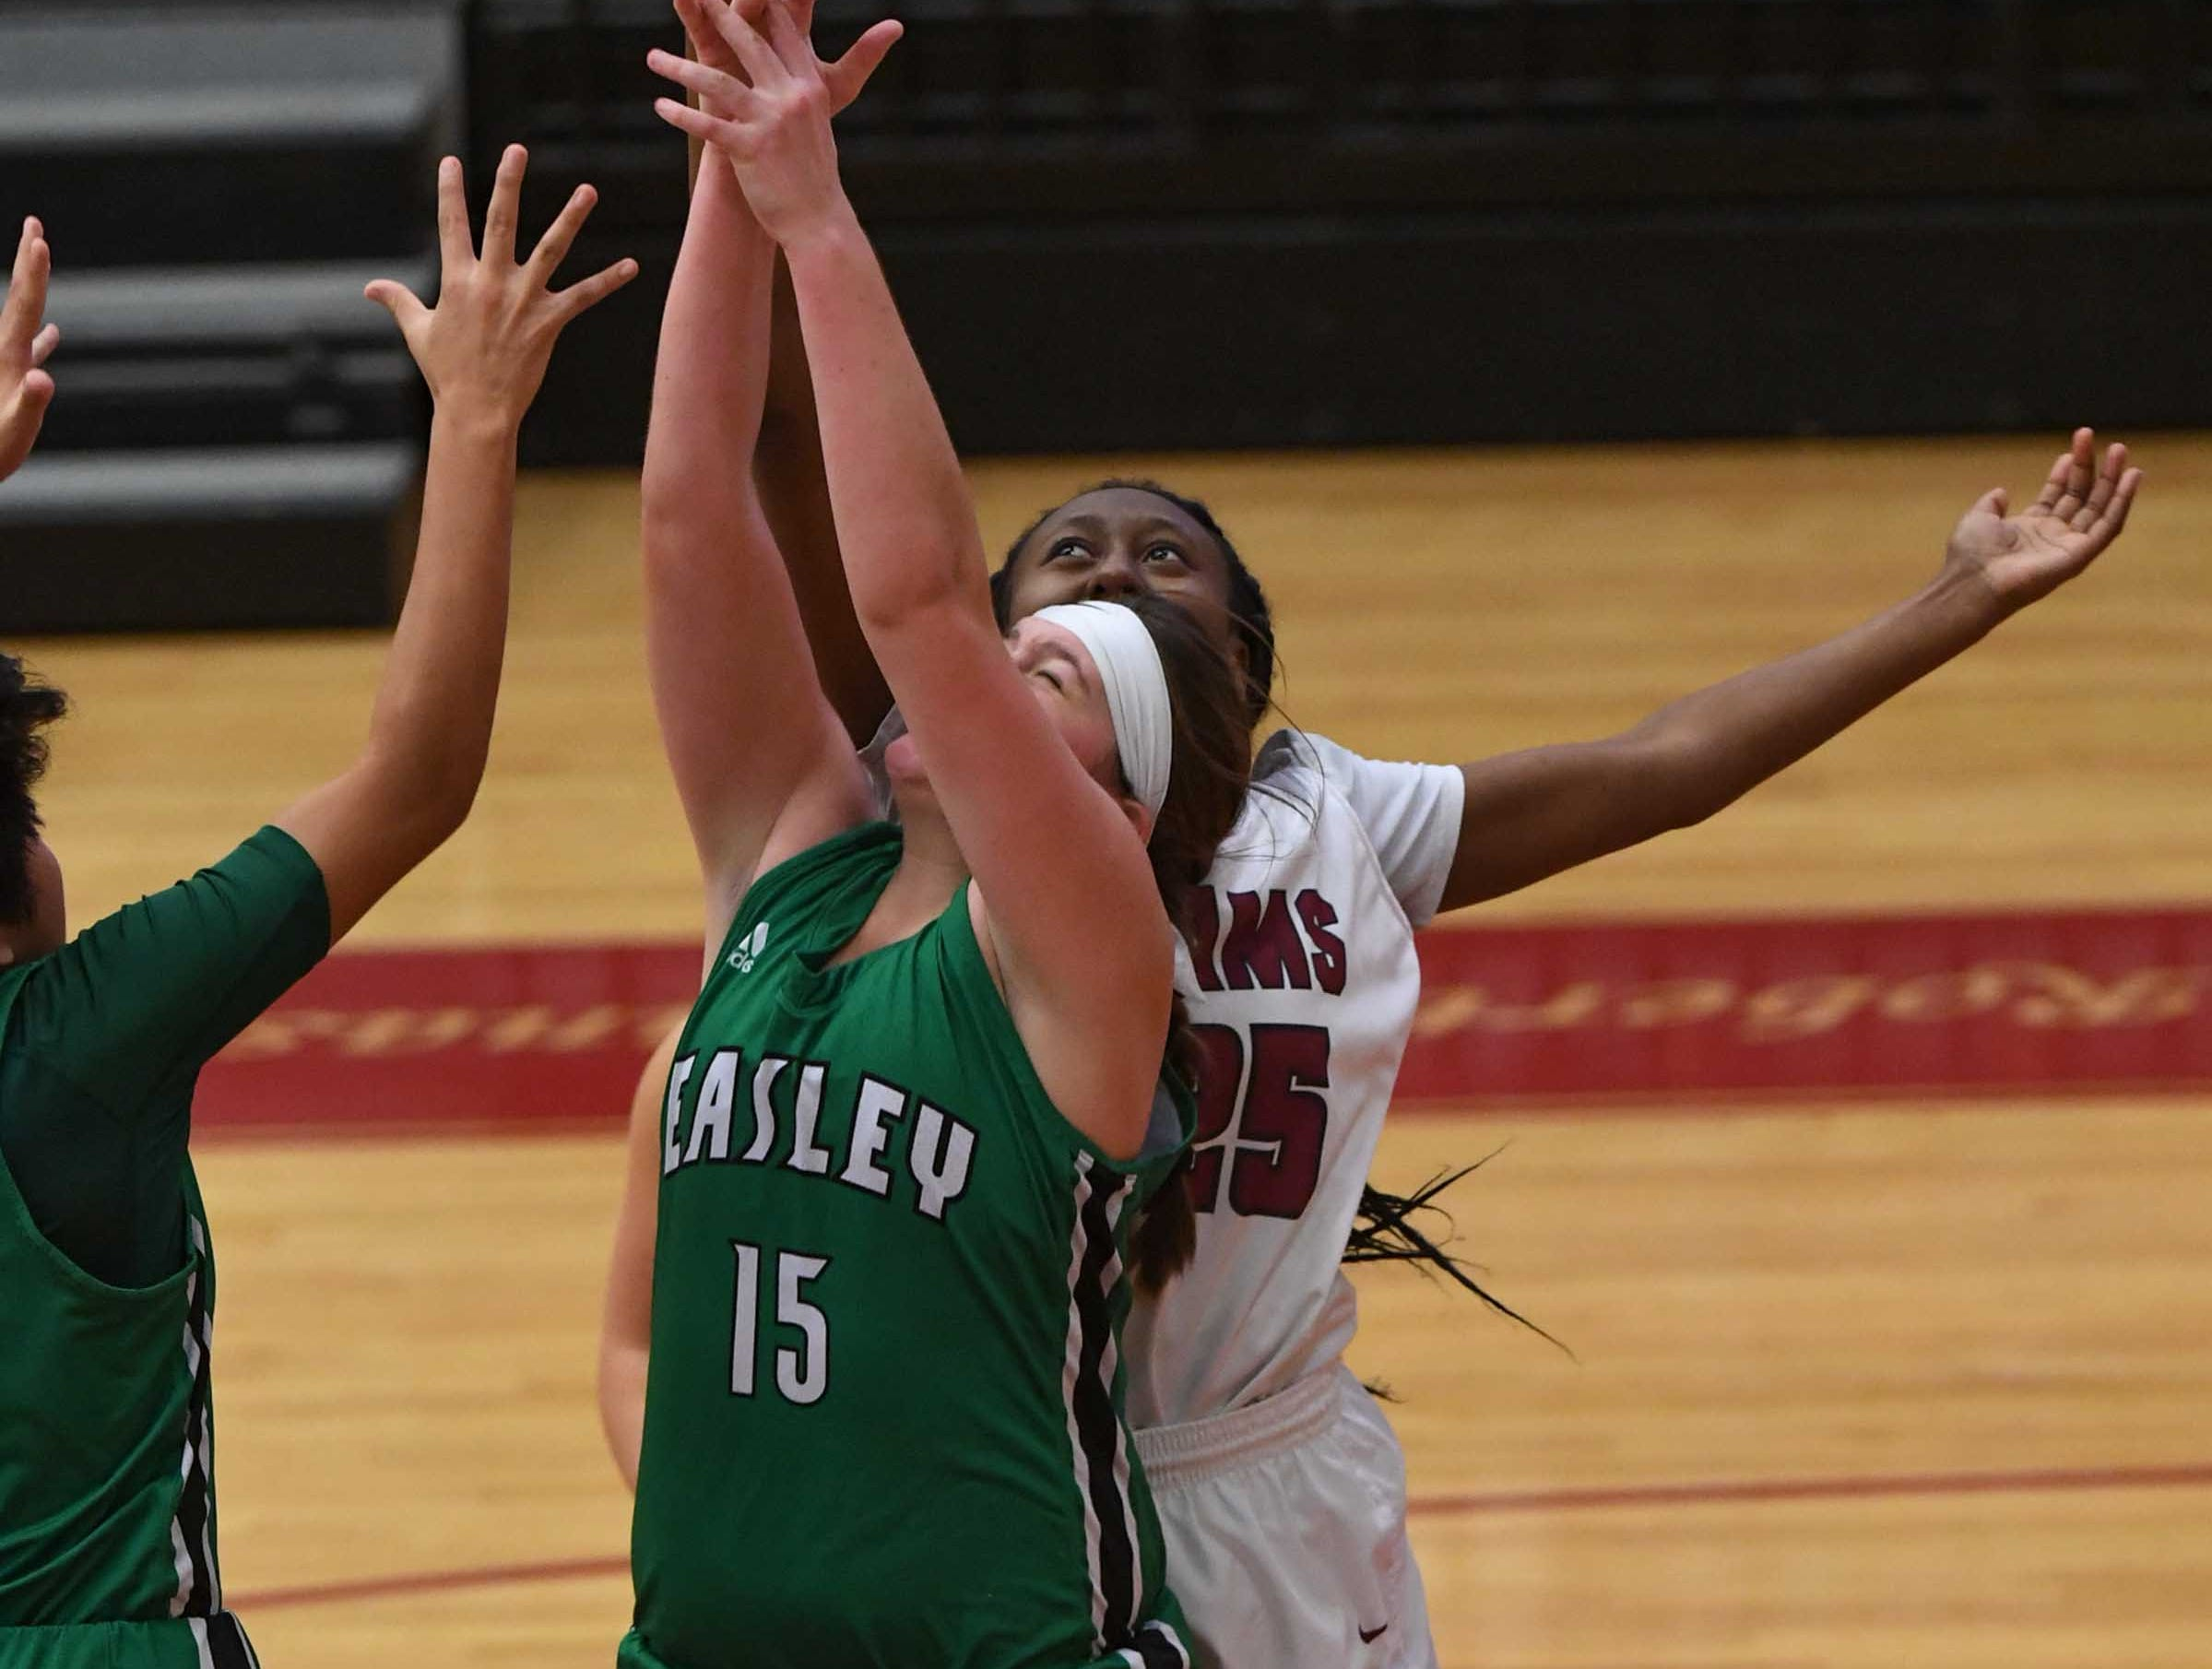 Westside junior Keyshuna Fair(25) and Easley freshman Kylie Nabors(15) reach for a ball during the third quarter at Westside High School in Anderson on Friday.